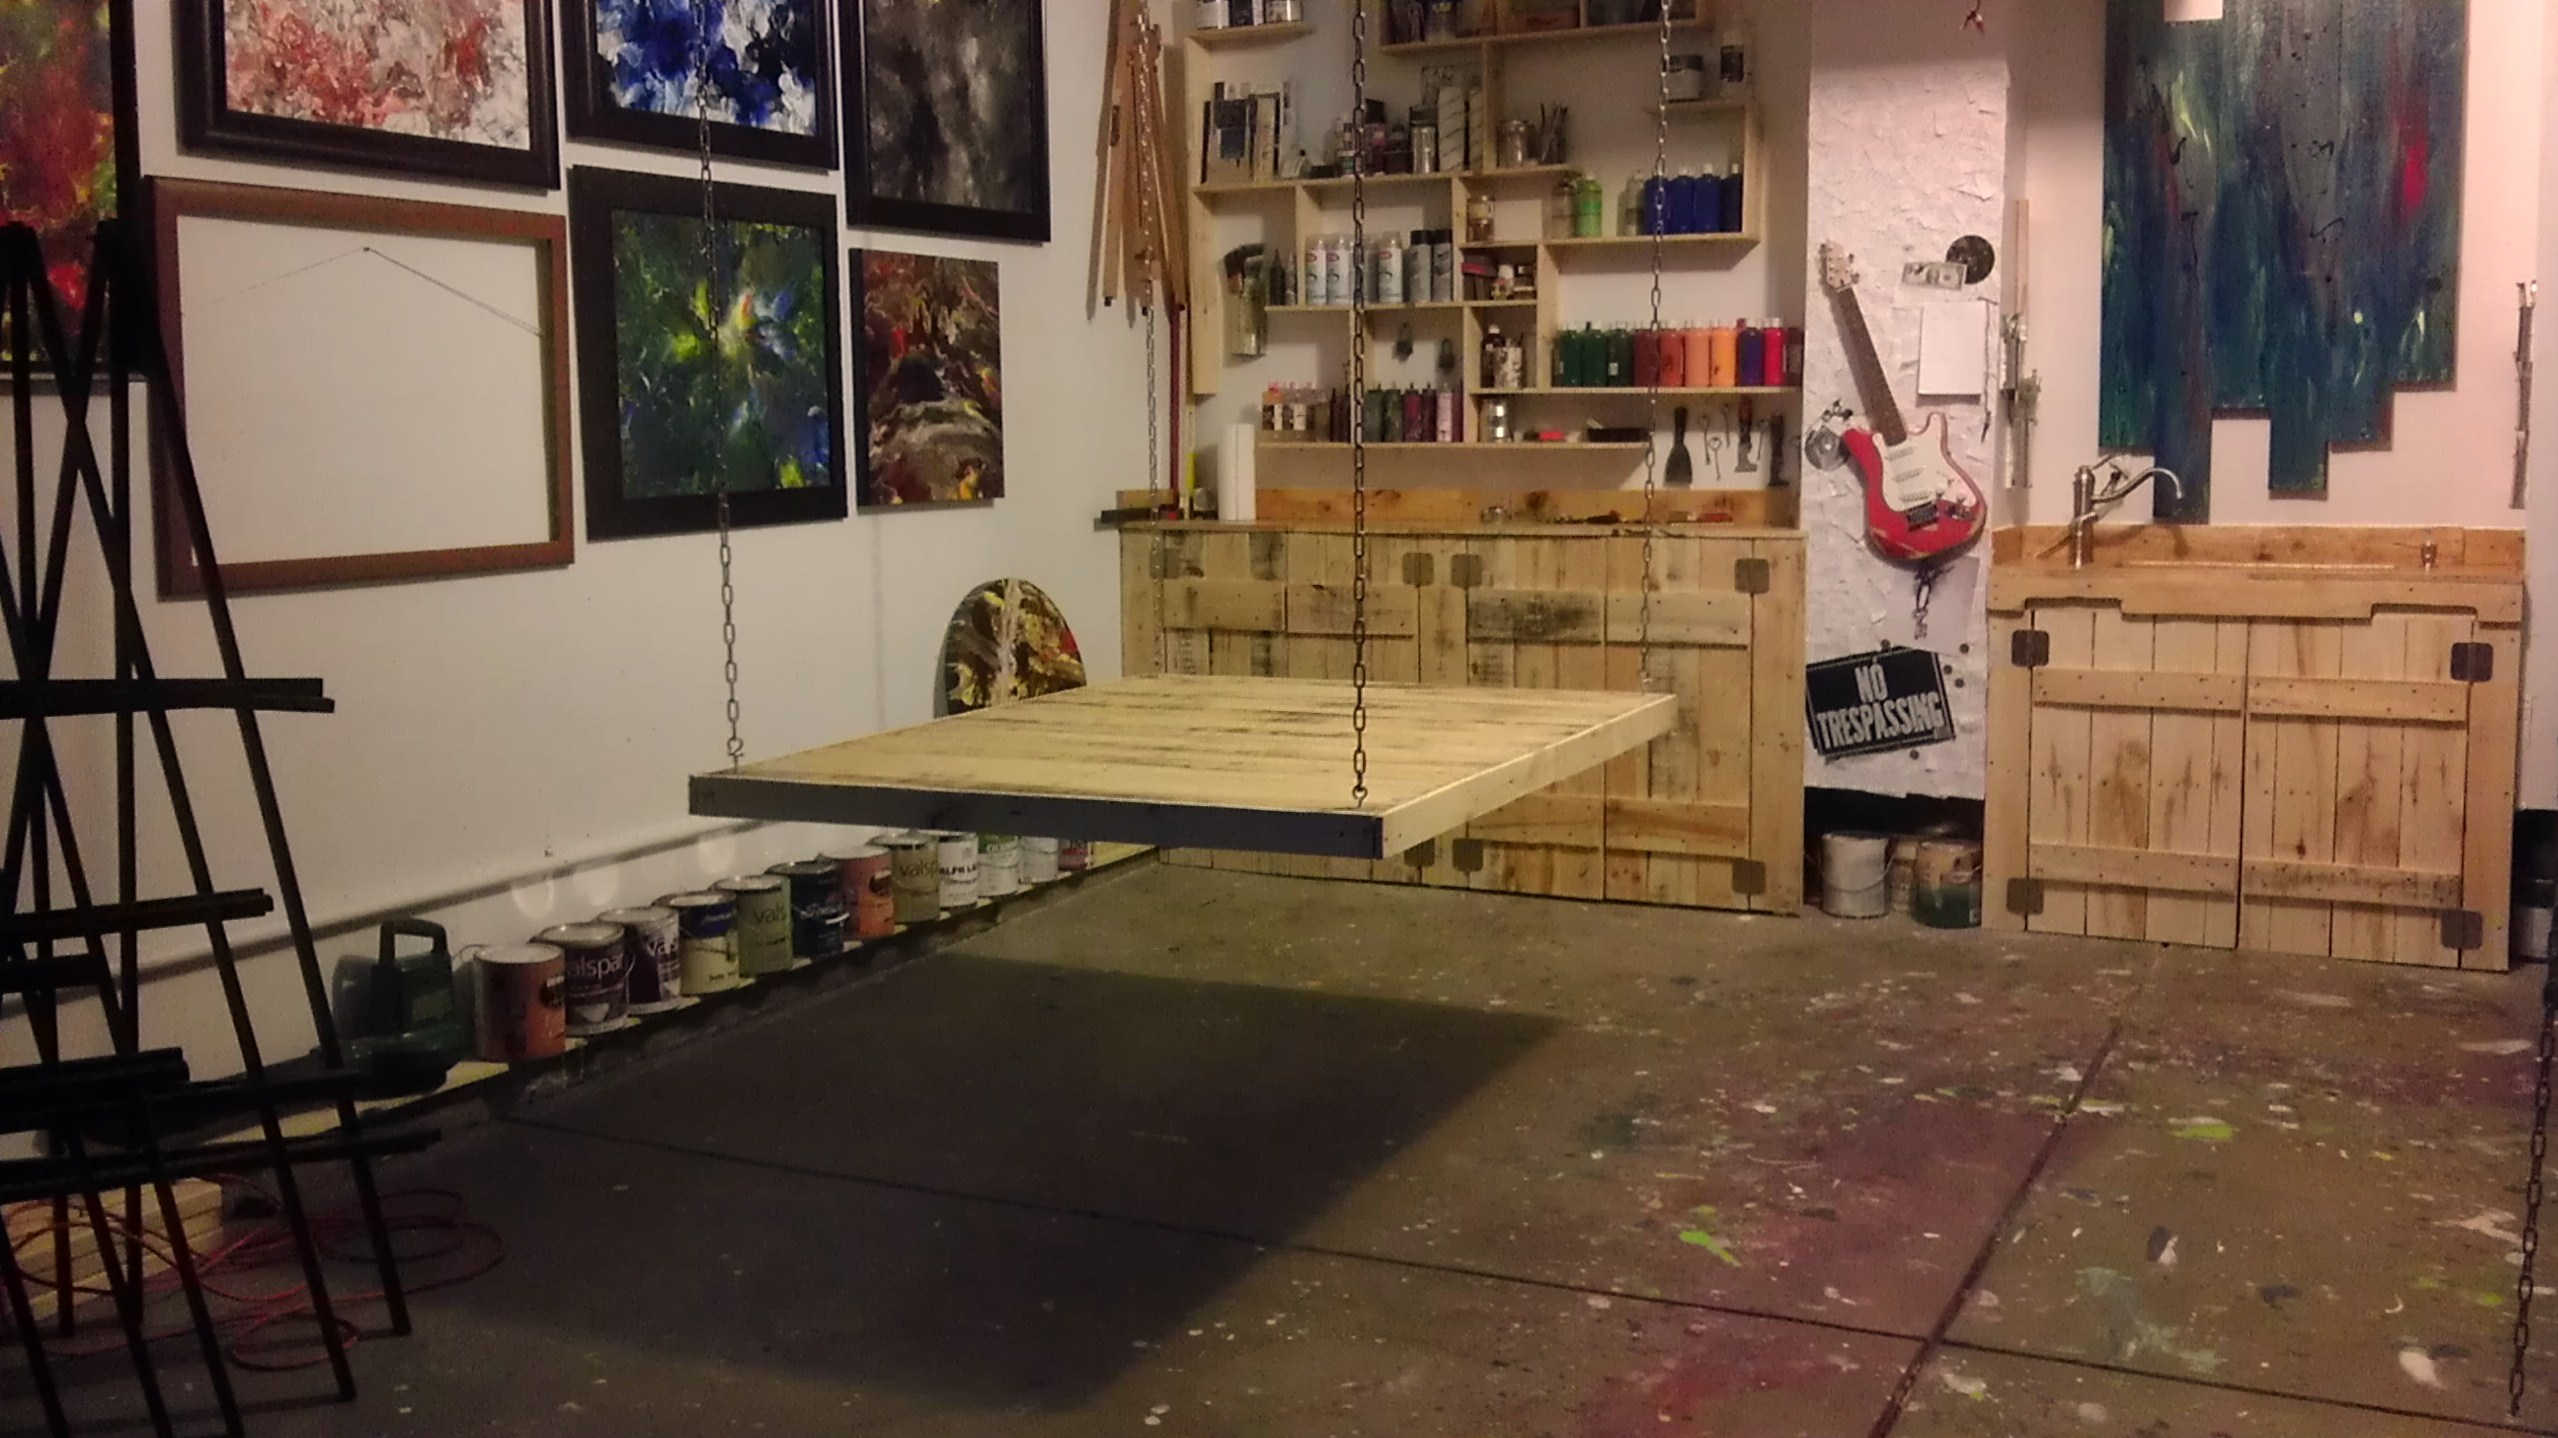 Studio - New Painting Table - Art by Eric Siebenthal - Acrylicmind.com